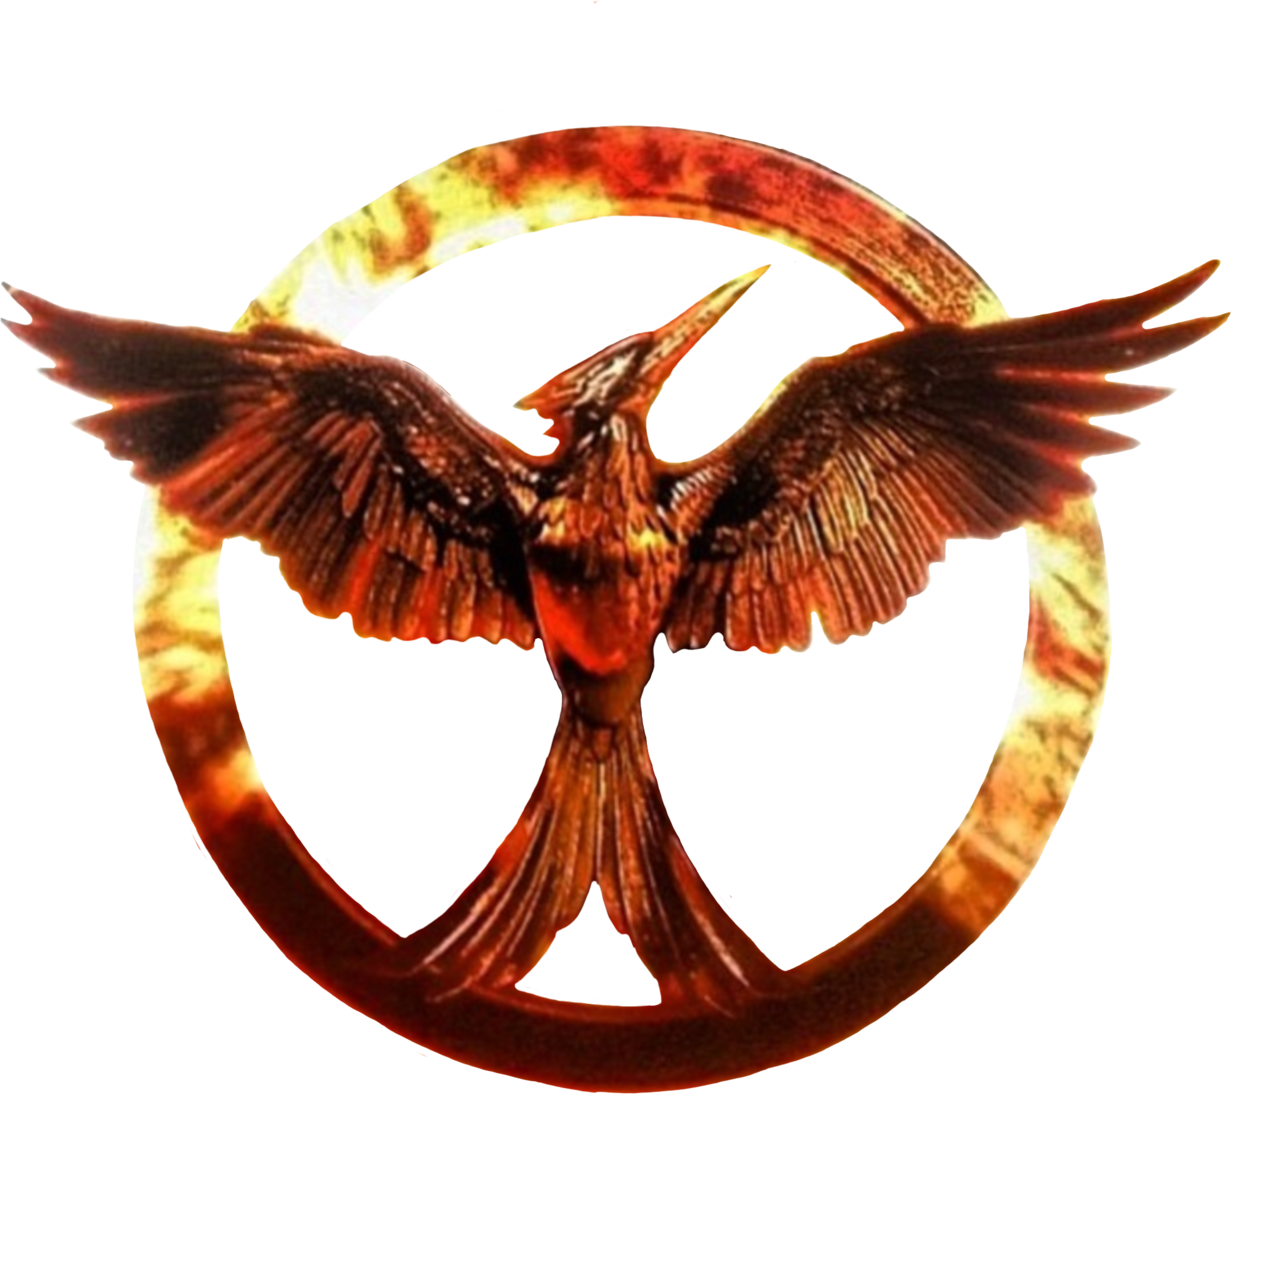 Hunger games pin png. Who saw the movie